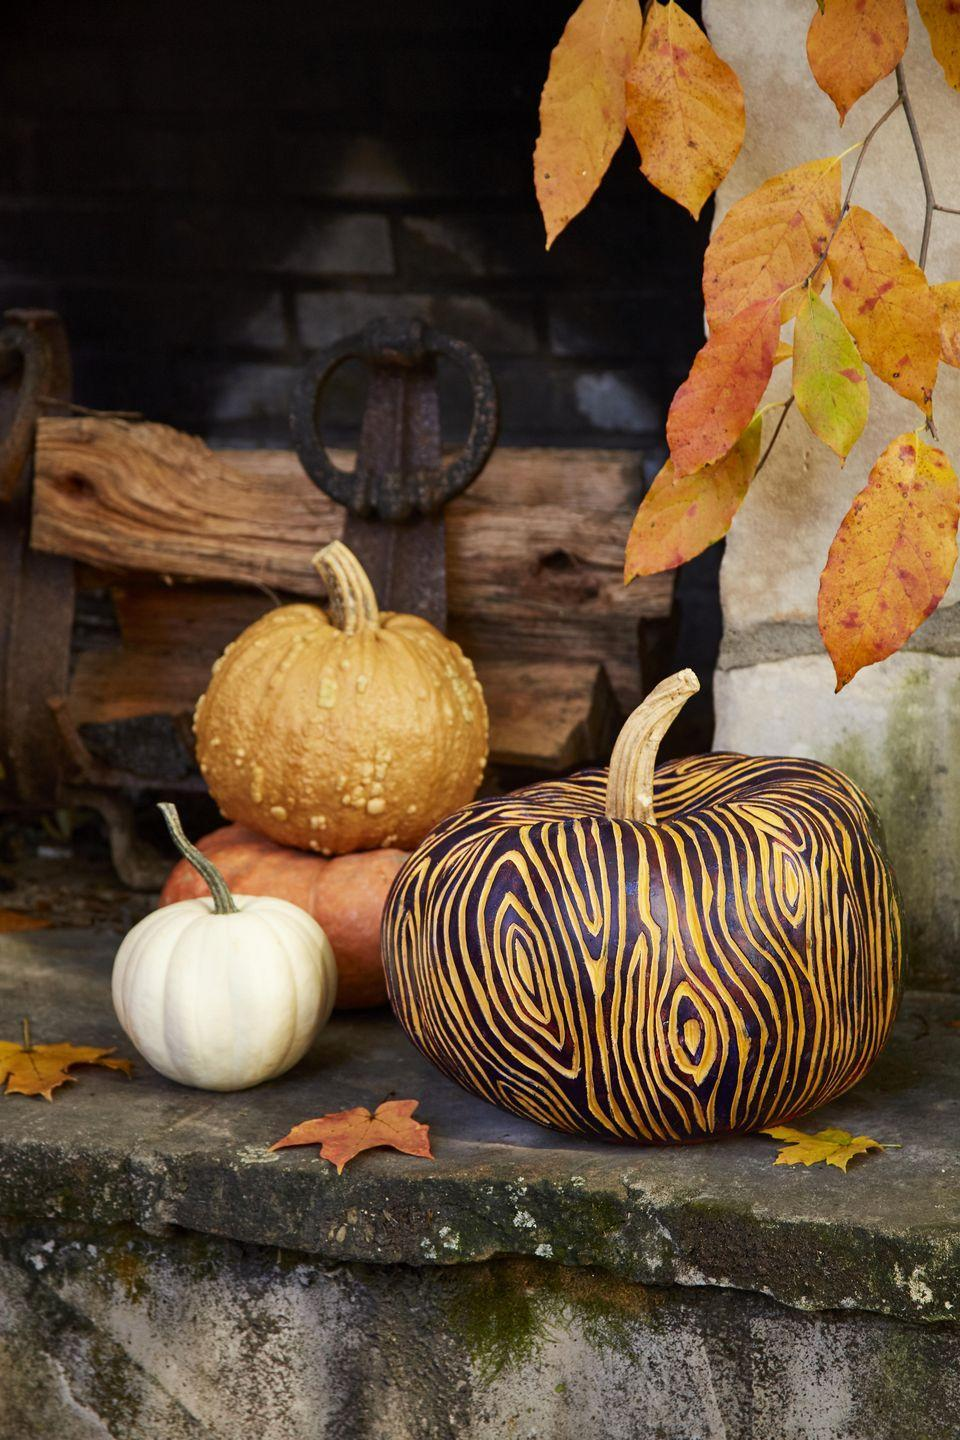 <p>Adding paint to an etched faux bois (the artistic imitation of wood) pumpkin helps the colors pop adding fun flair to this sophisticated pumpkin. Display on a covered porch next to the door or on a table.</p><p><strong>To make:</strong> Lightly sketch a faux bois pattern on a pumpkin with a pencil. Use a linoleum carving tool to etch out the pattern. Once complete paint unetched part of the pumpkin with acrylic paint. If you get any paint in the etched grain you can remove it up with the carving tool once dry.</p>